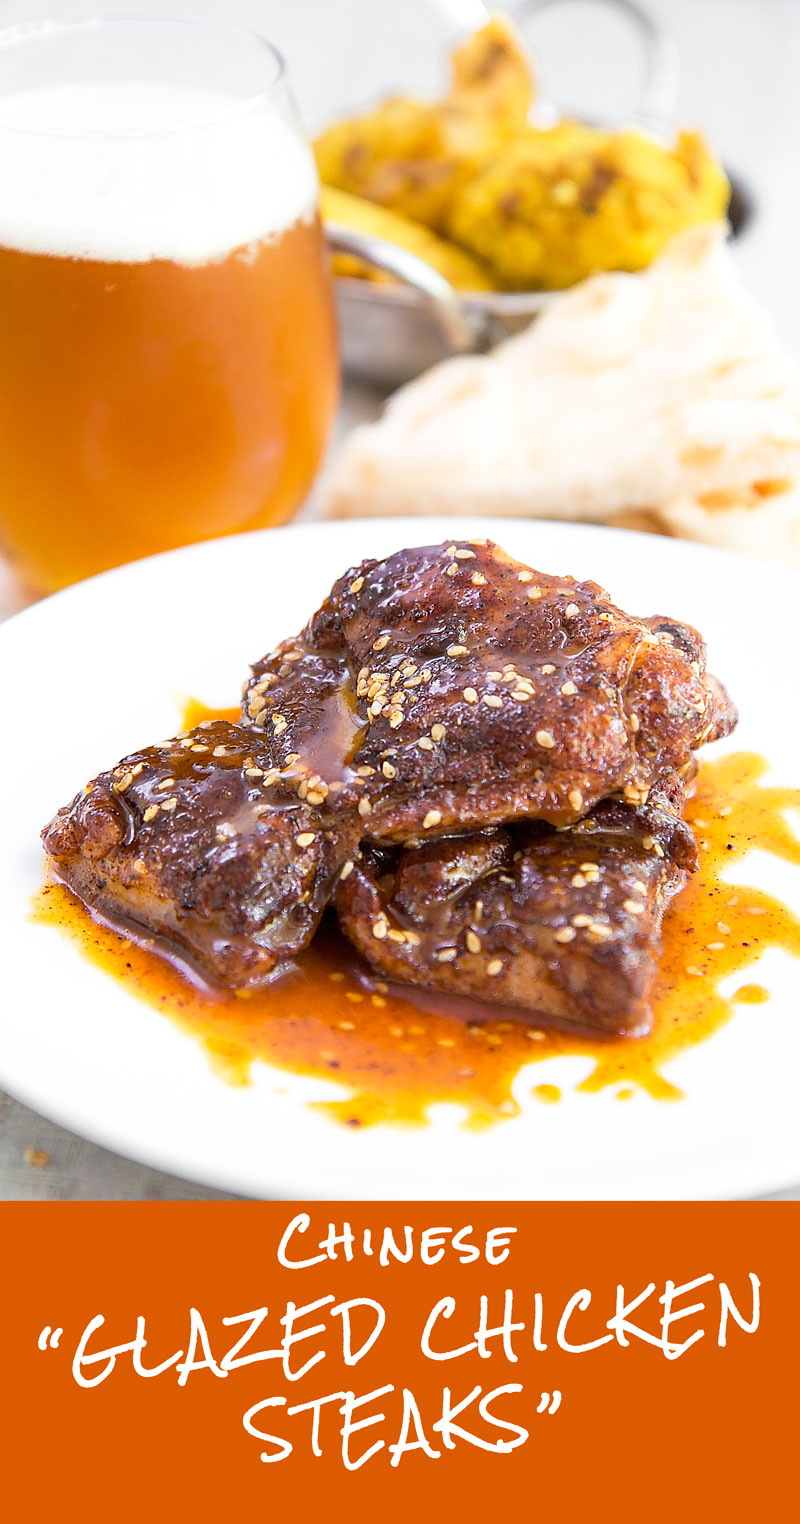 CHINESE GALZED CHICKEN STEAKS with honey, soy sauce and sesame seeds